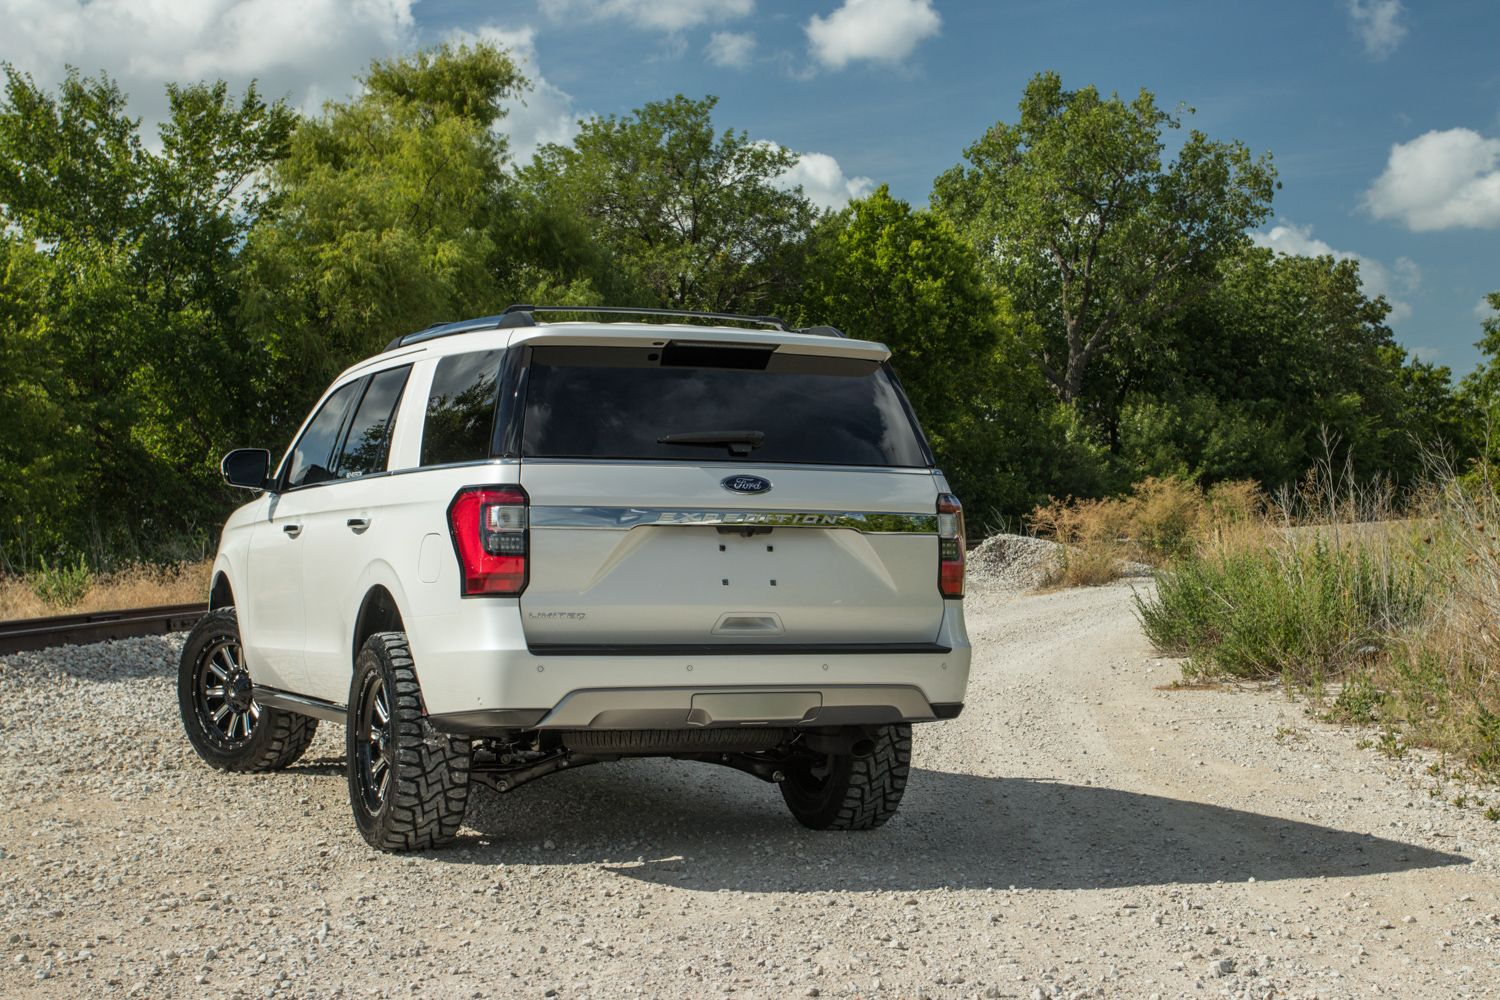 Lifted Ford Expedition On 33 Inch Tires In 2020 Ford Expedition Expedition Ford